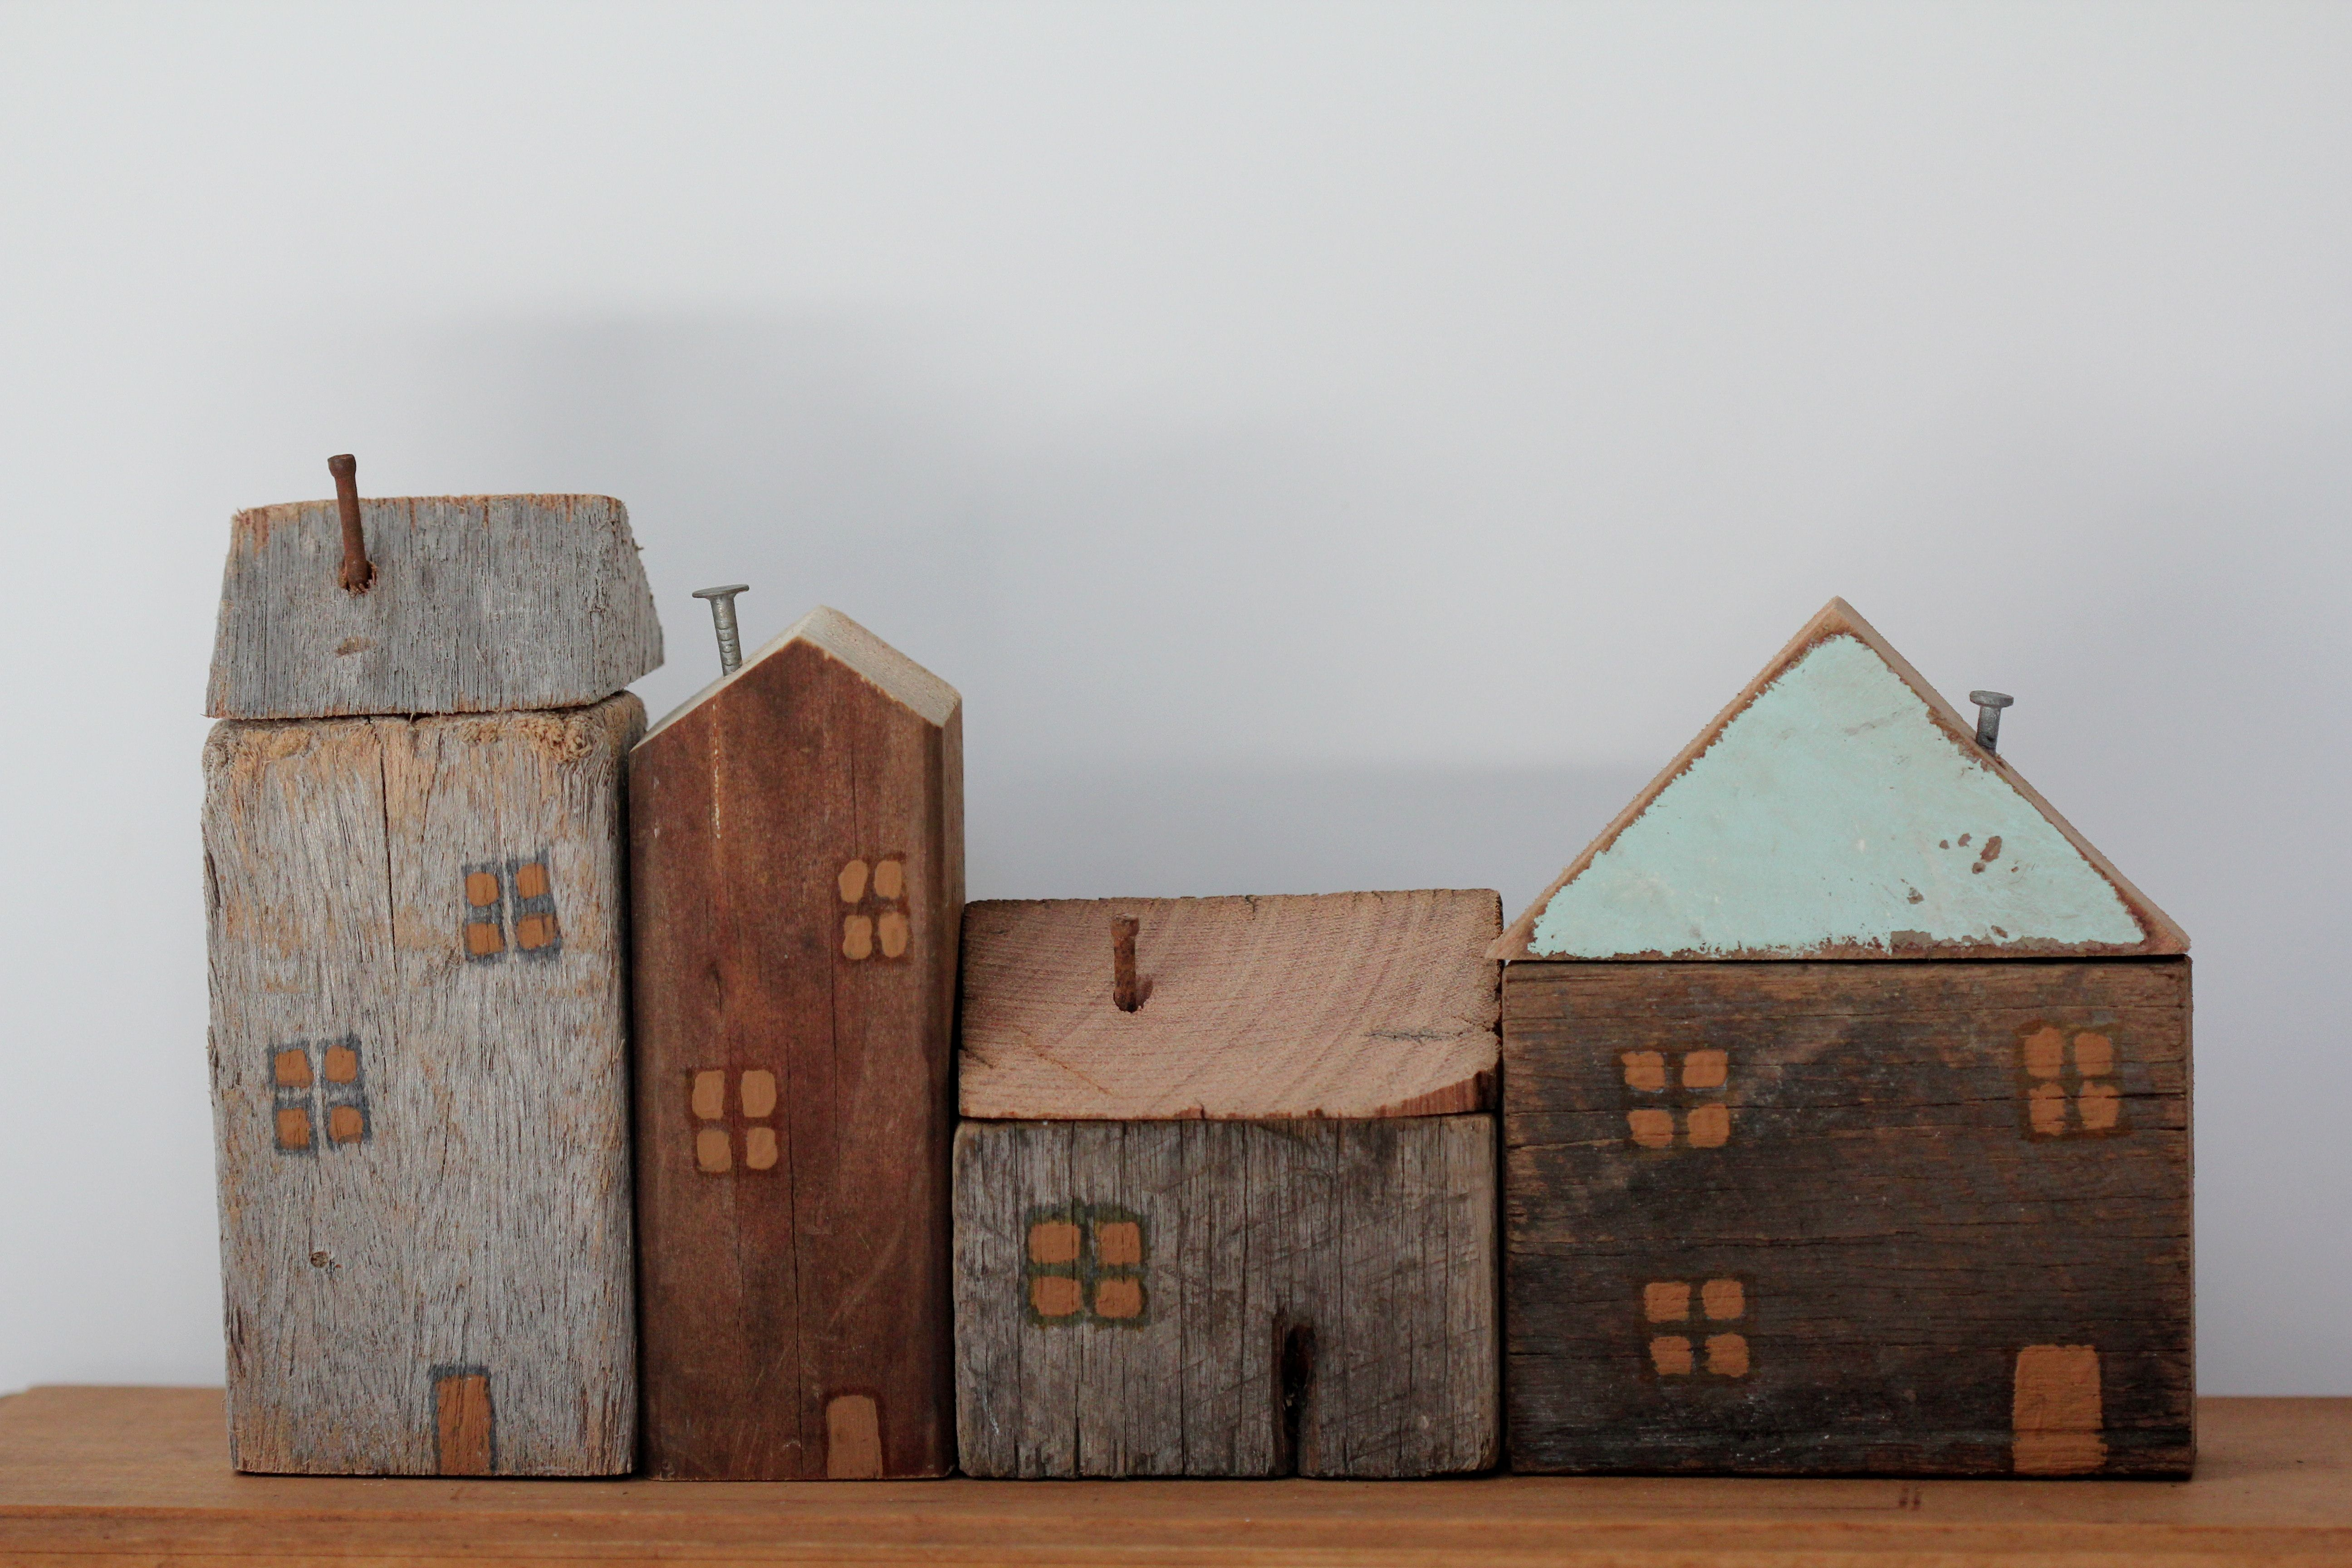 Shanty town wooden houses pinterest wooden for Mini wooden house